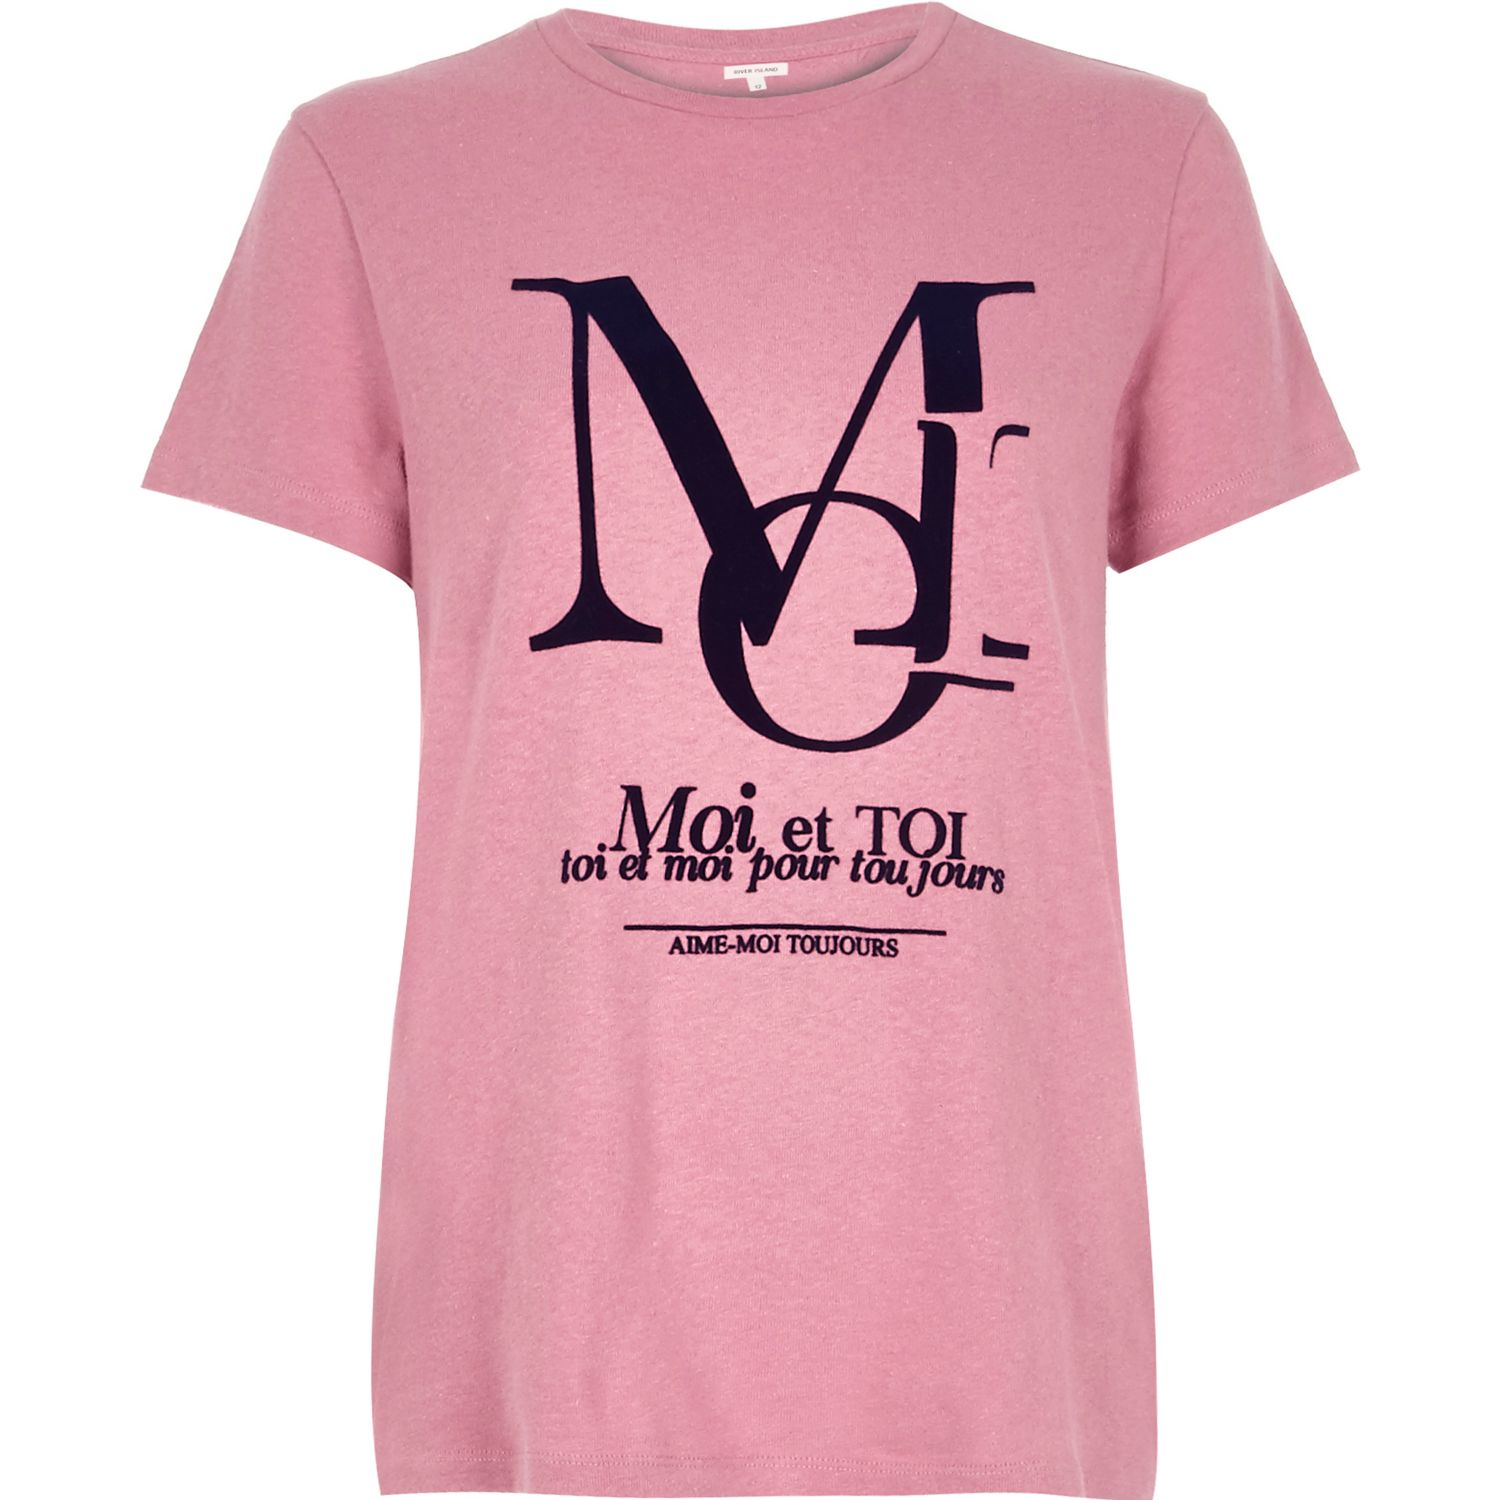 River island pink french slogan print fitted t shirt in for Fitted t shirt printing